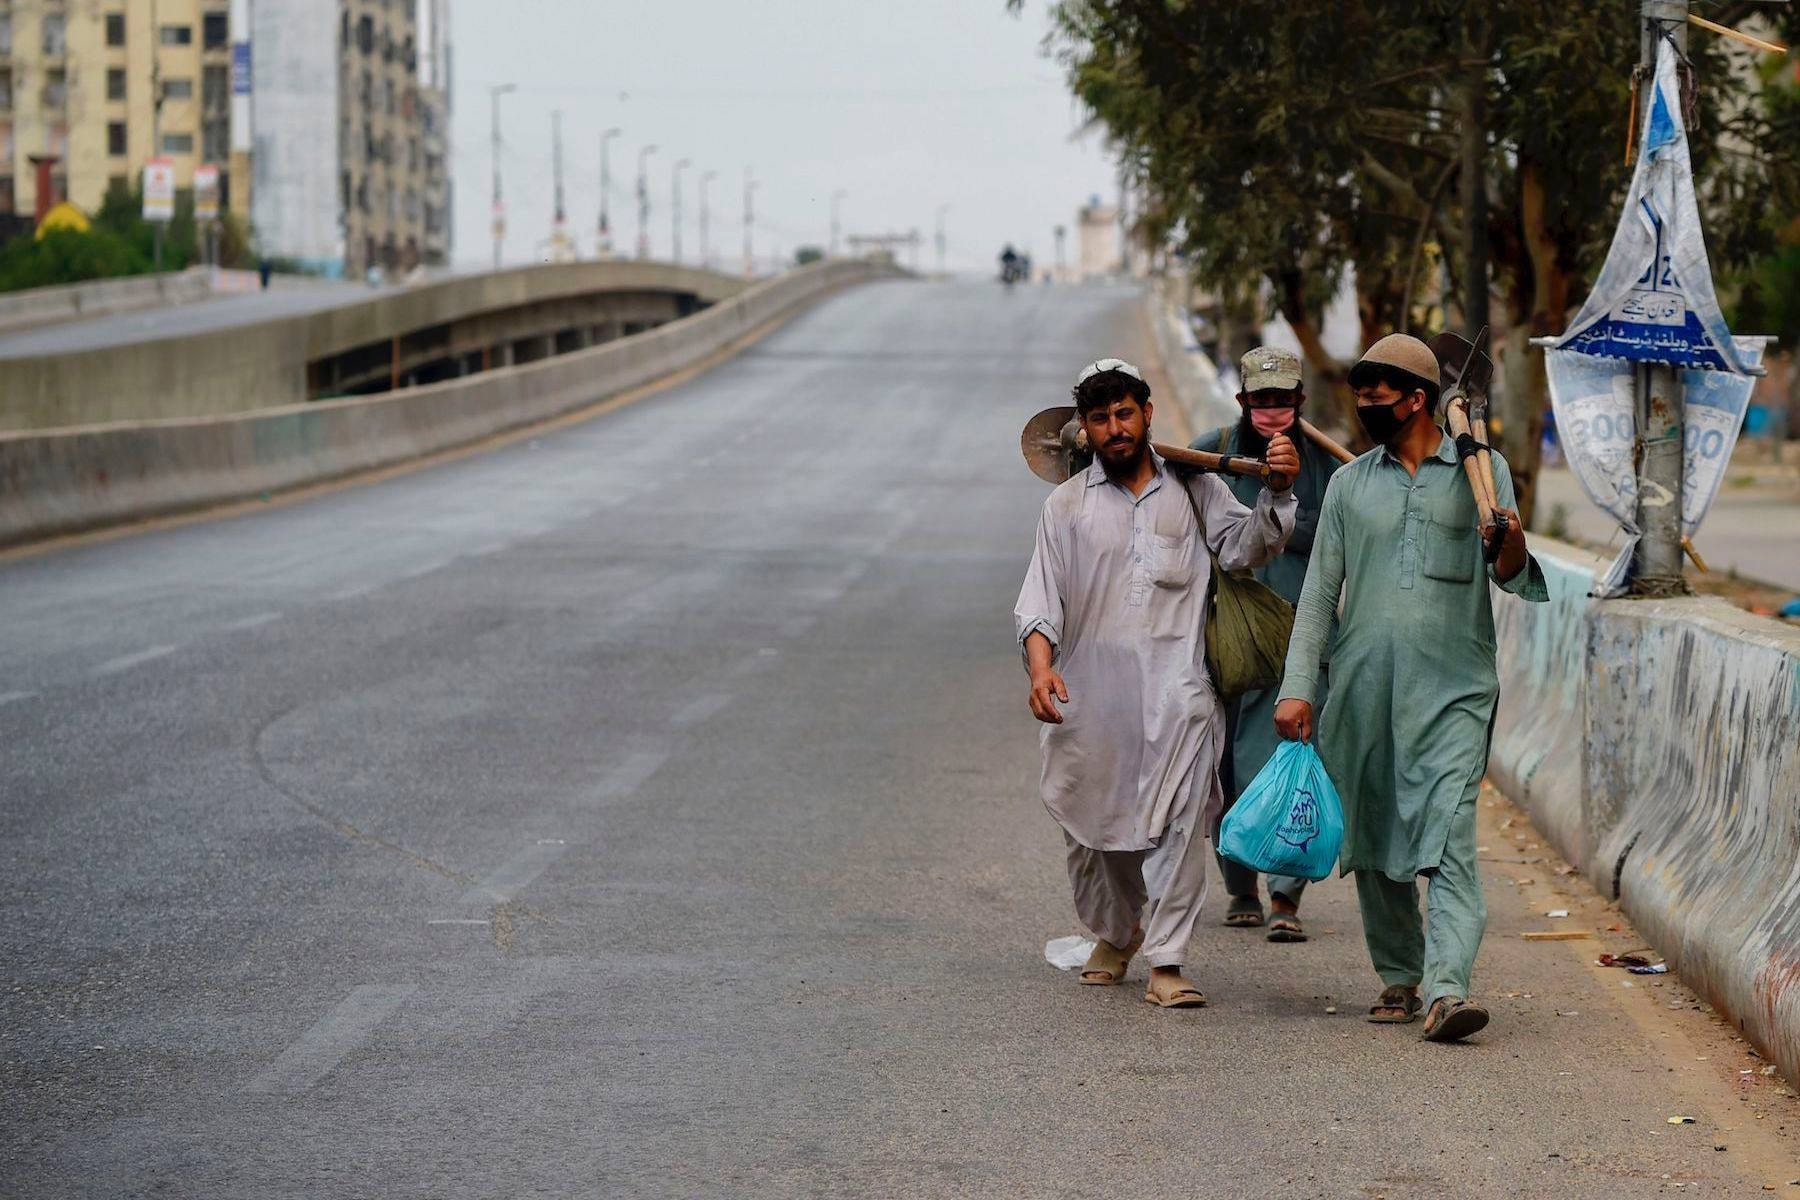 Labourers walk on a deserted street during a lockdown in Karachi. — AFP